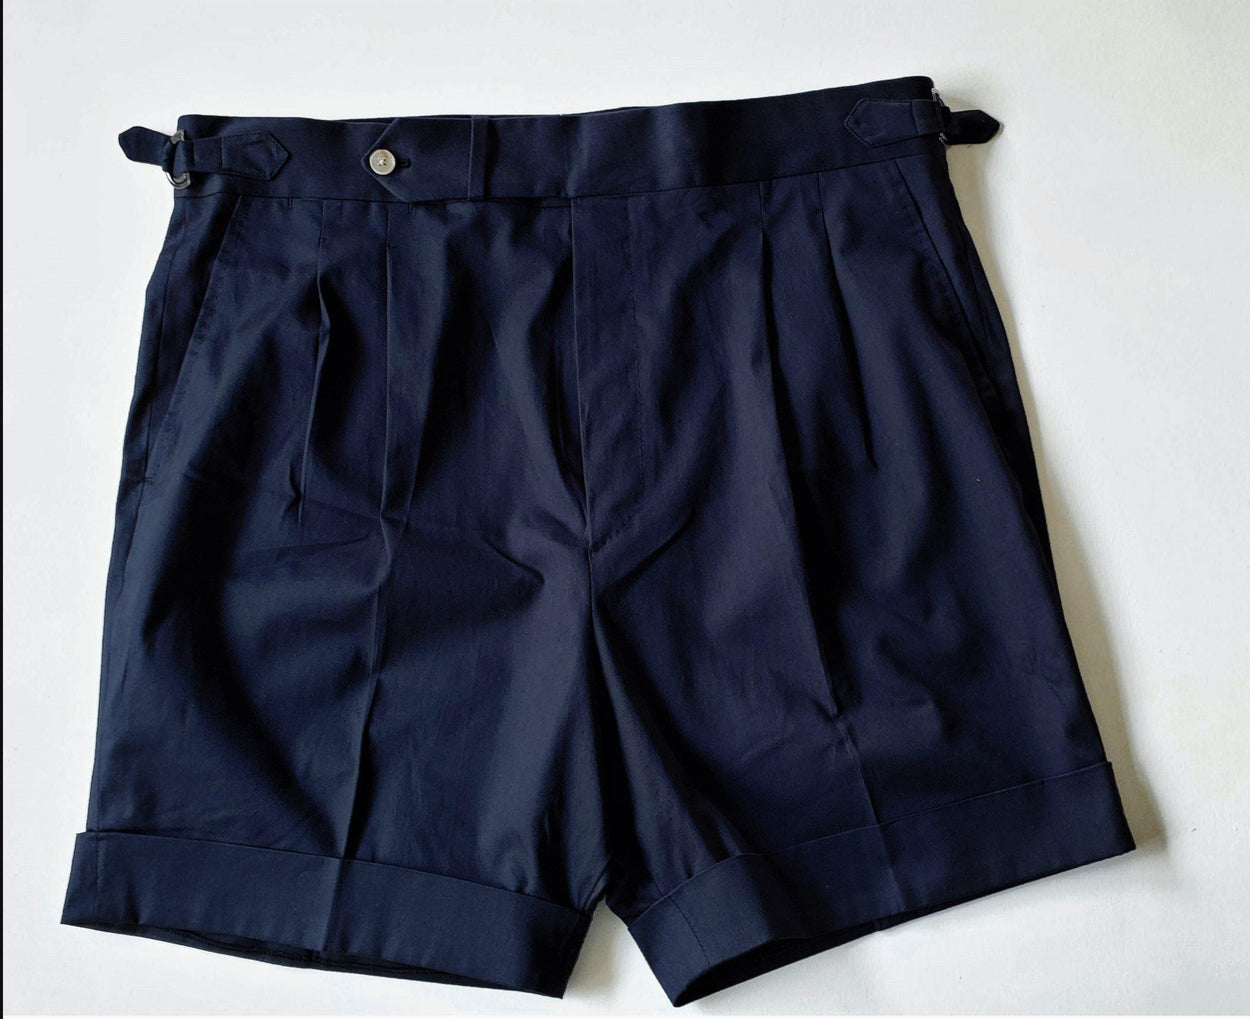 High Waisted Shorts - Cotton Twill